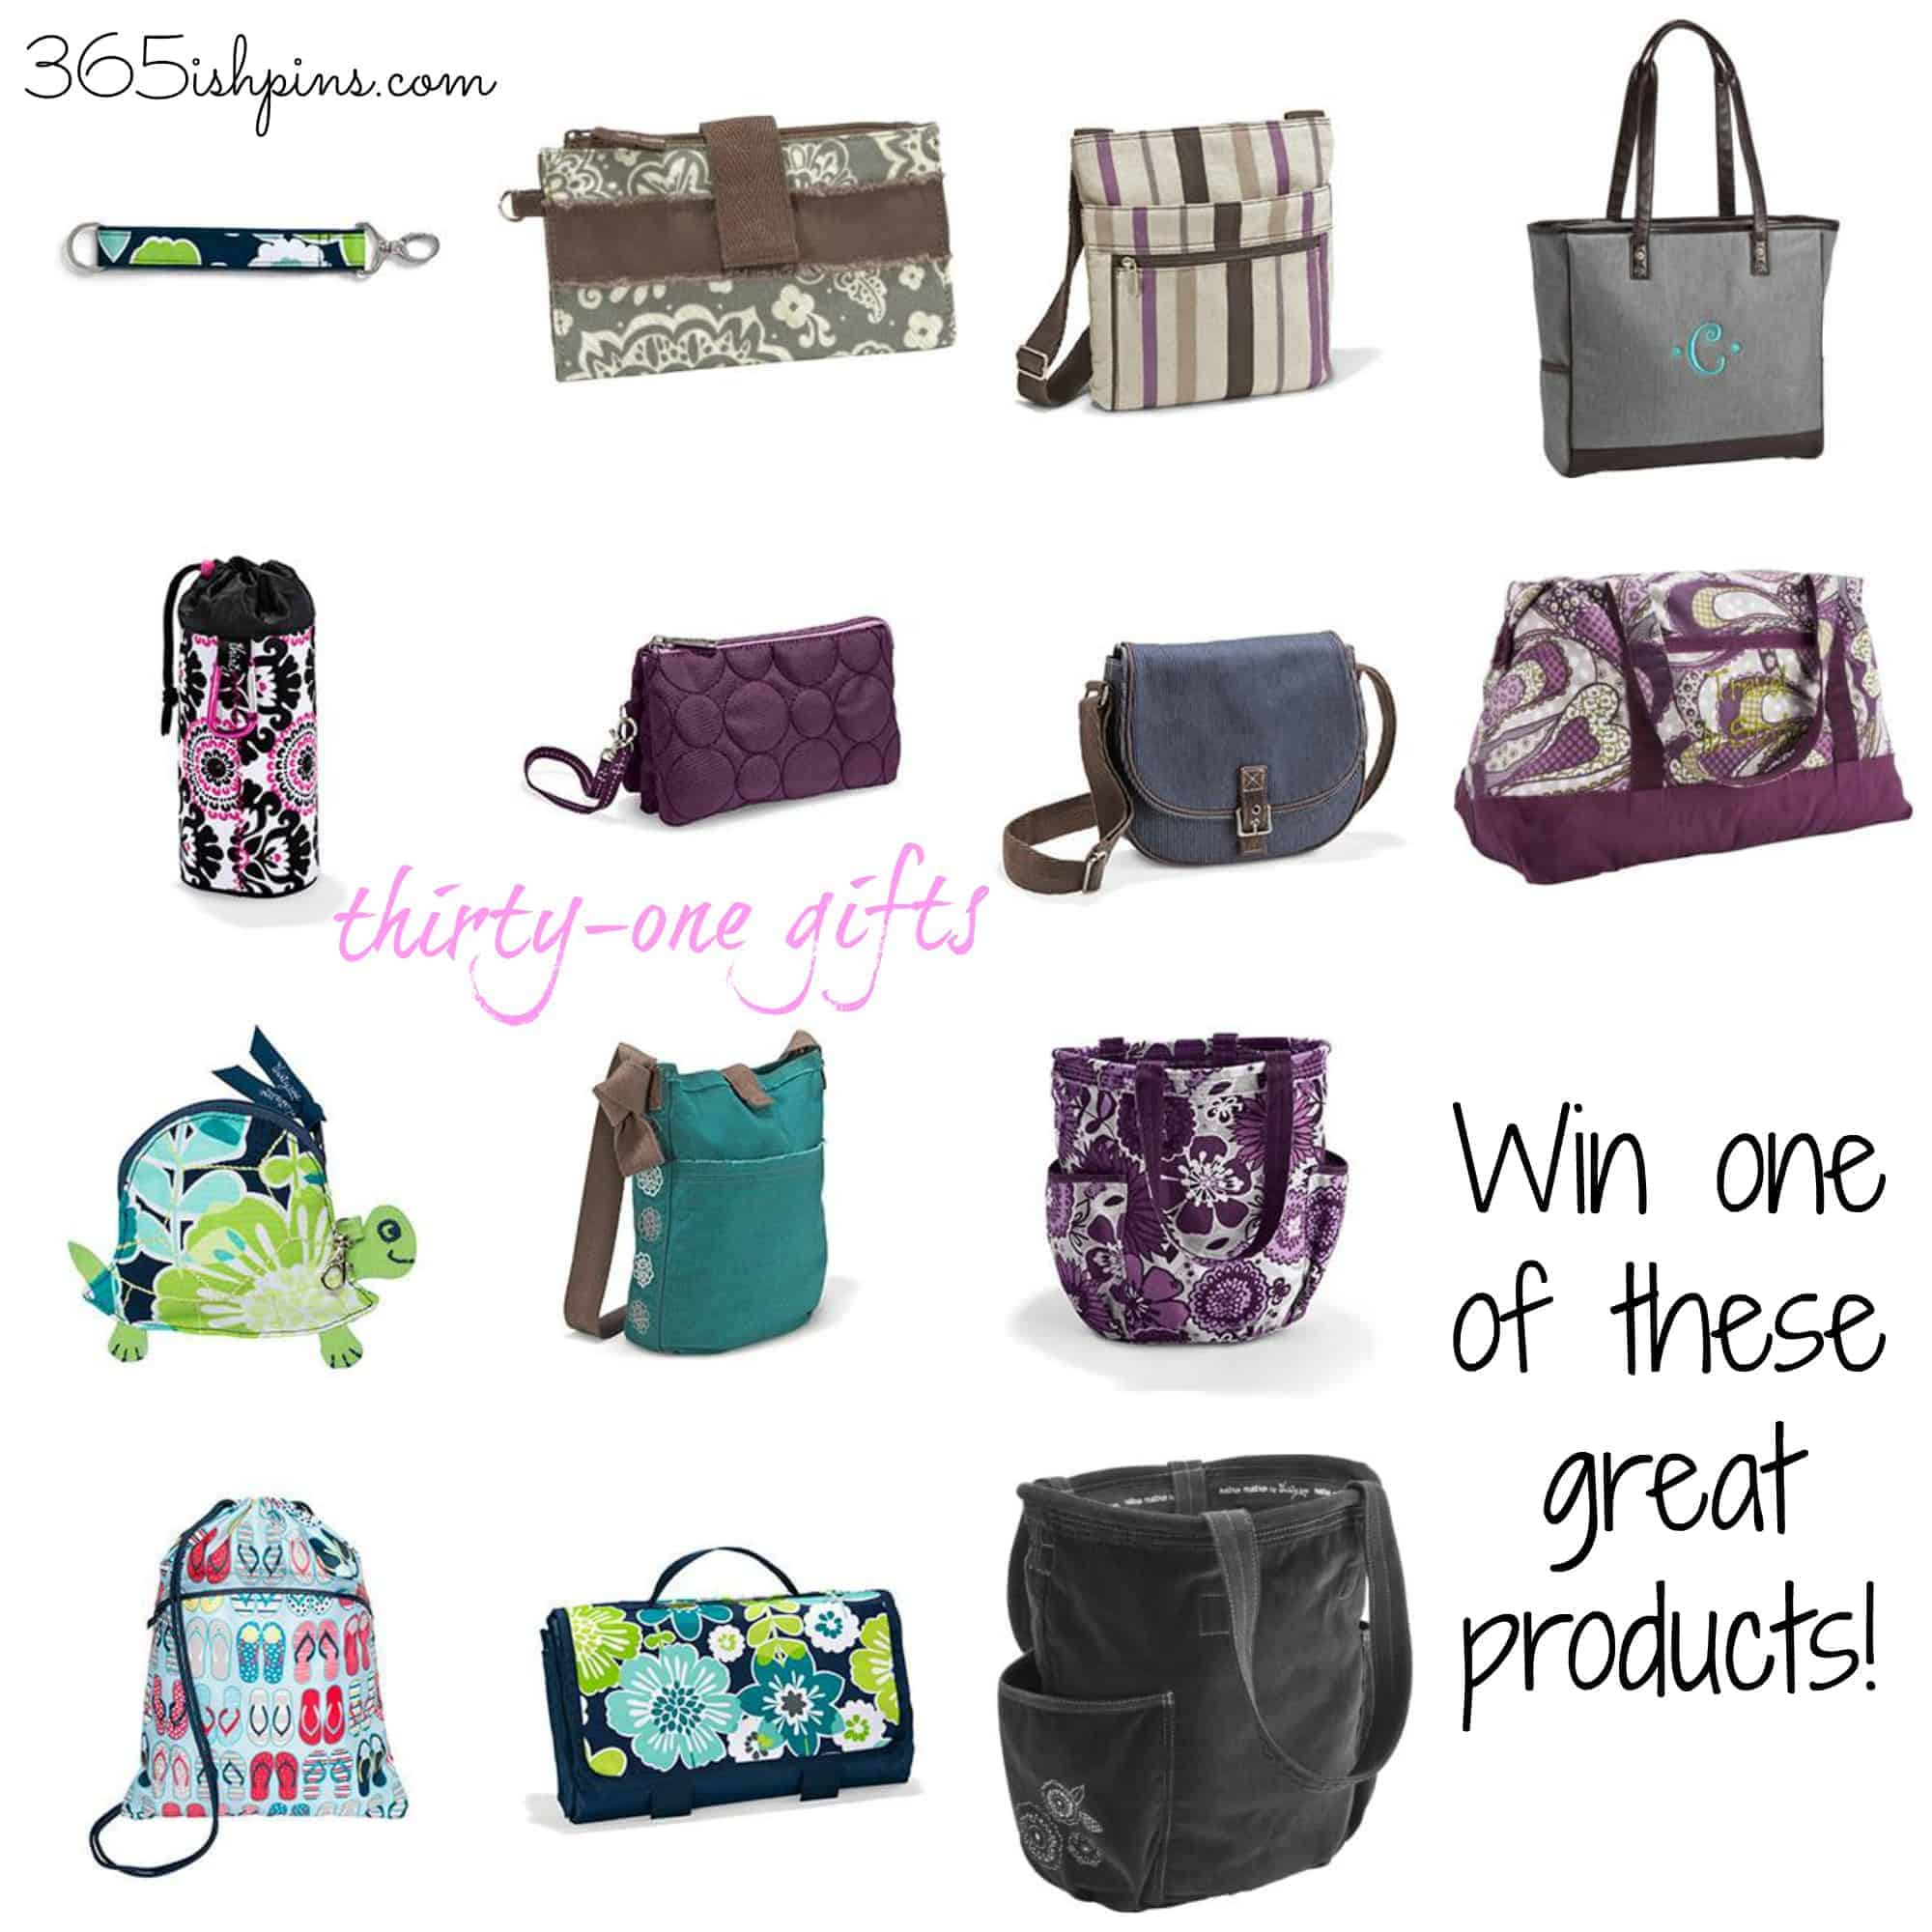 thirty-one giveaway prizes